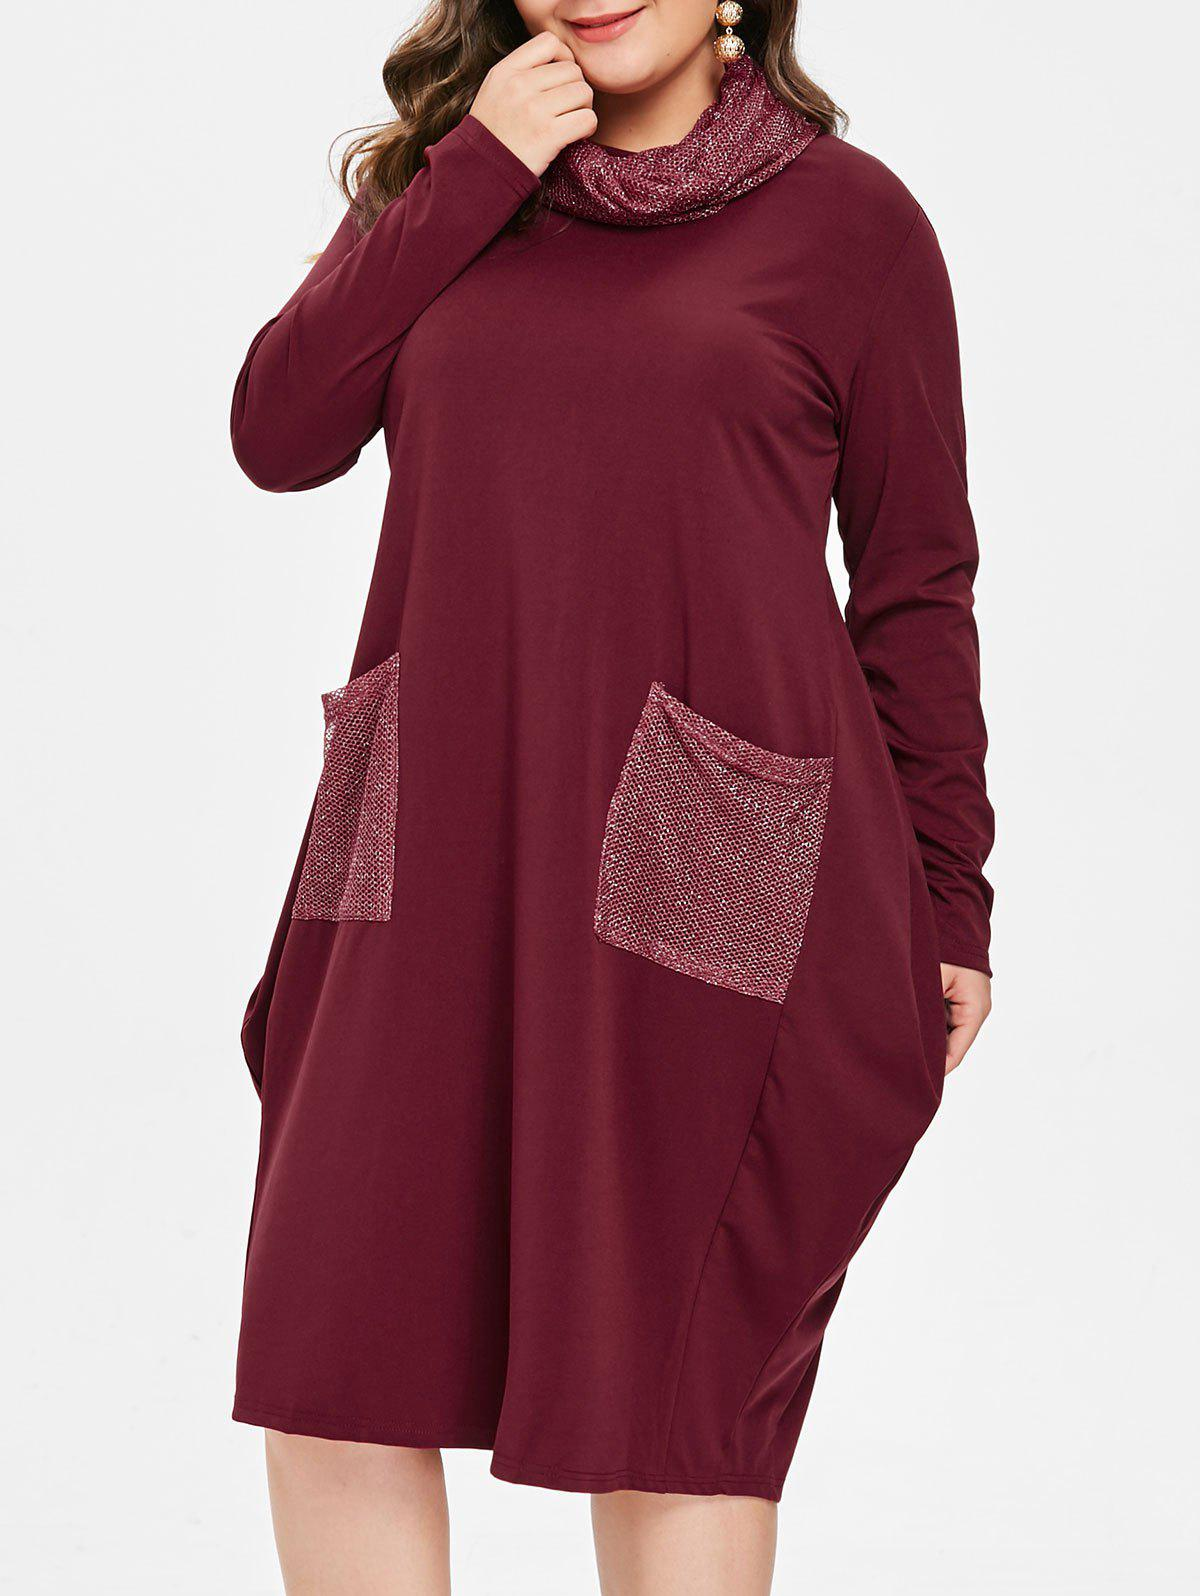 Fancy Front Pockets Plus Size Knee Length Dress with Scarf